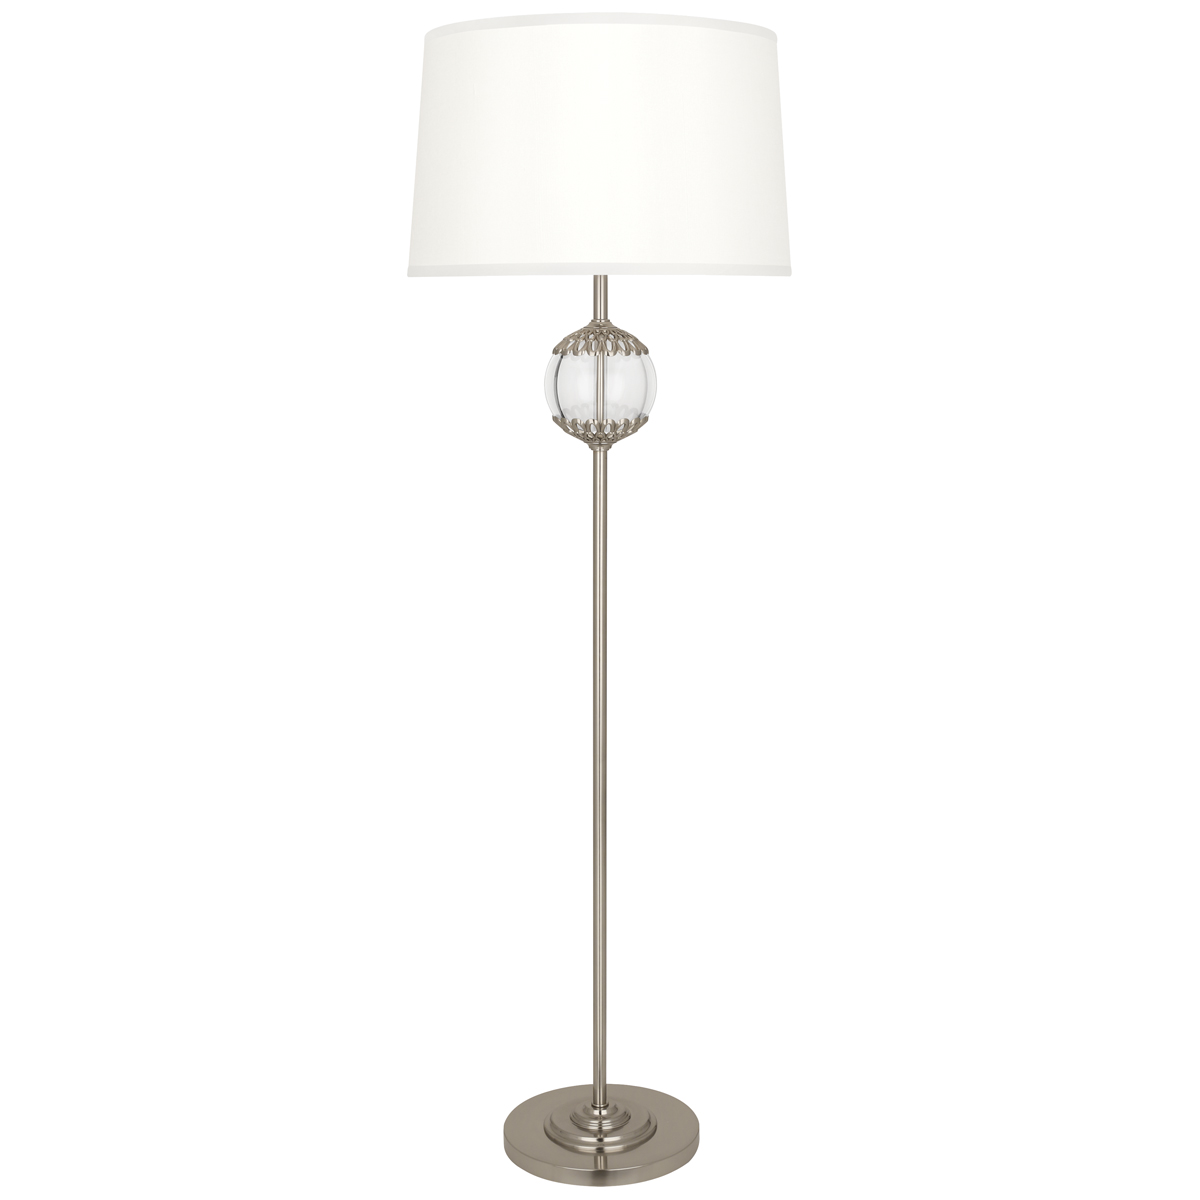 Williamsburg Polly Floor Lamp Style #S303